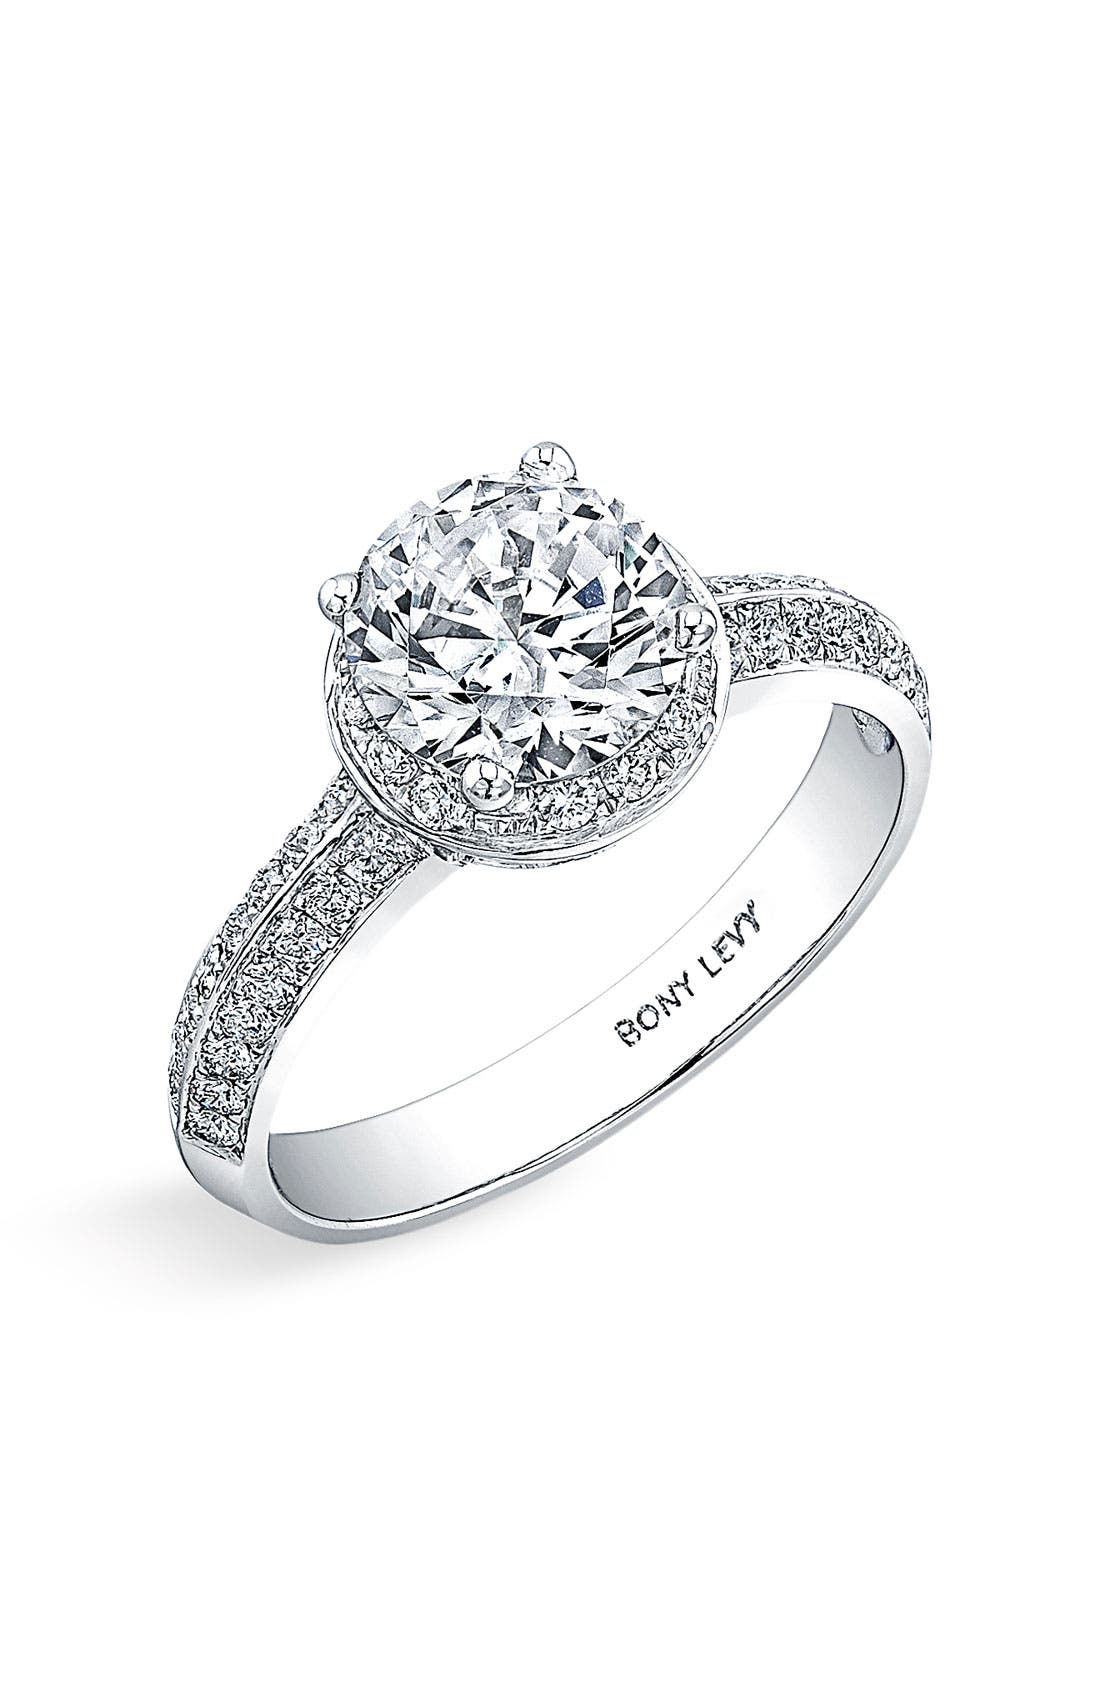 Alternate Image 1 Selected - Bony Levy Pavé Diamond Engagement Ring Setting (Nordstrom Exclusive)